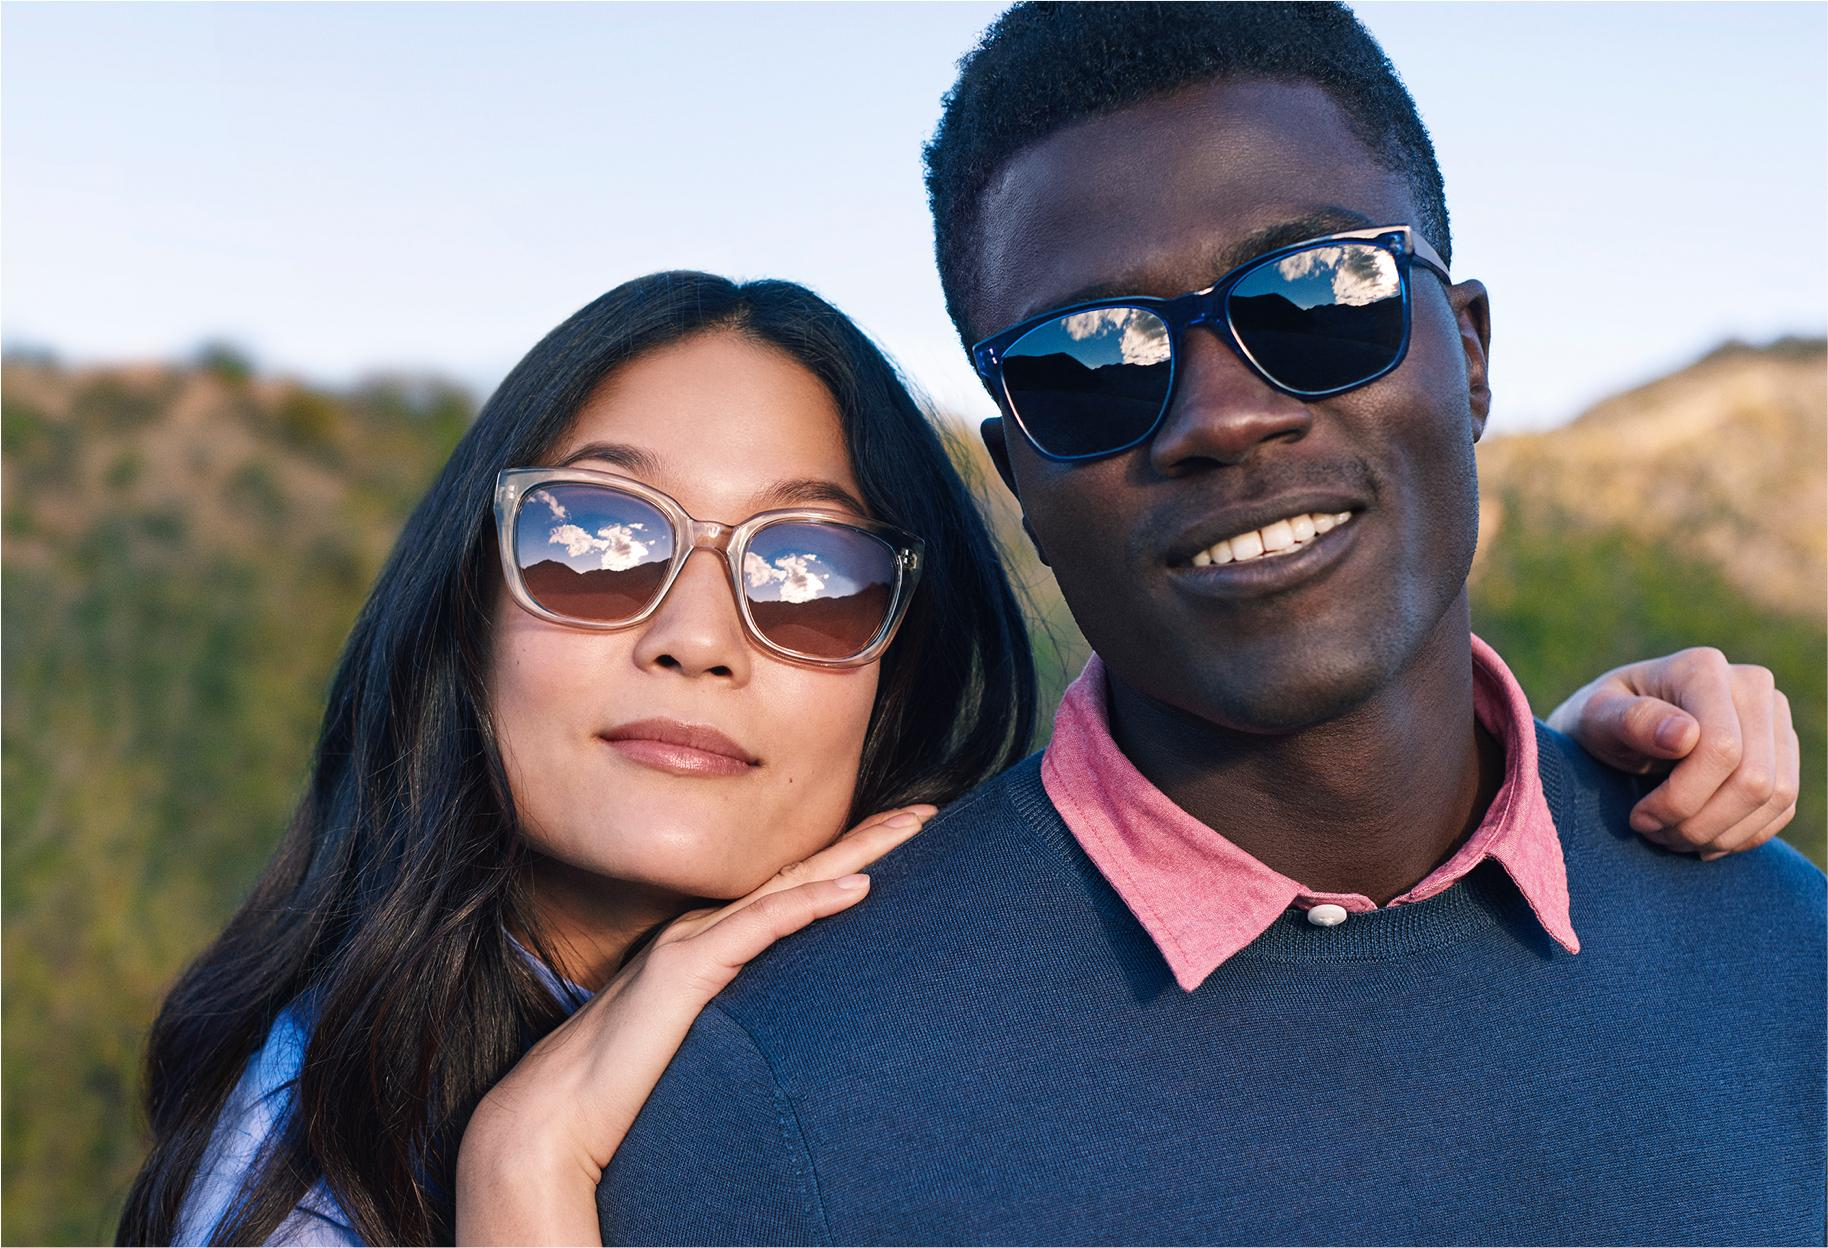 Two models wearing sunglasses